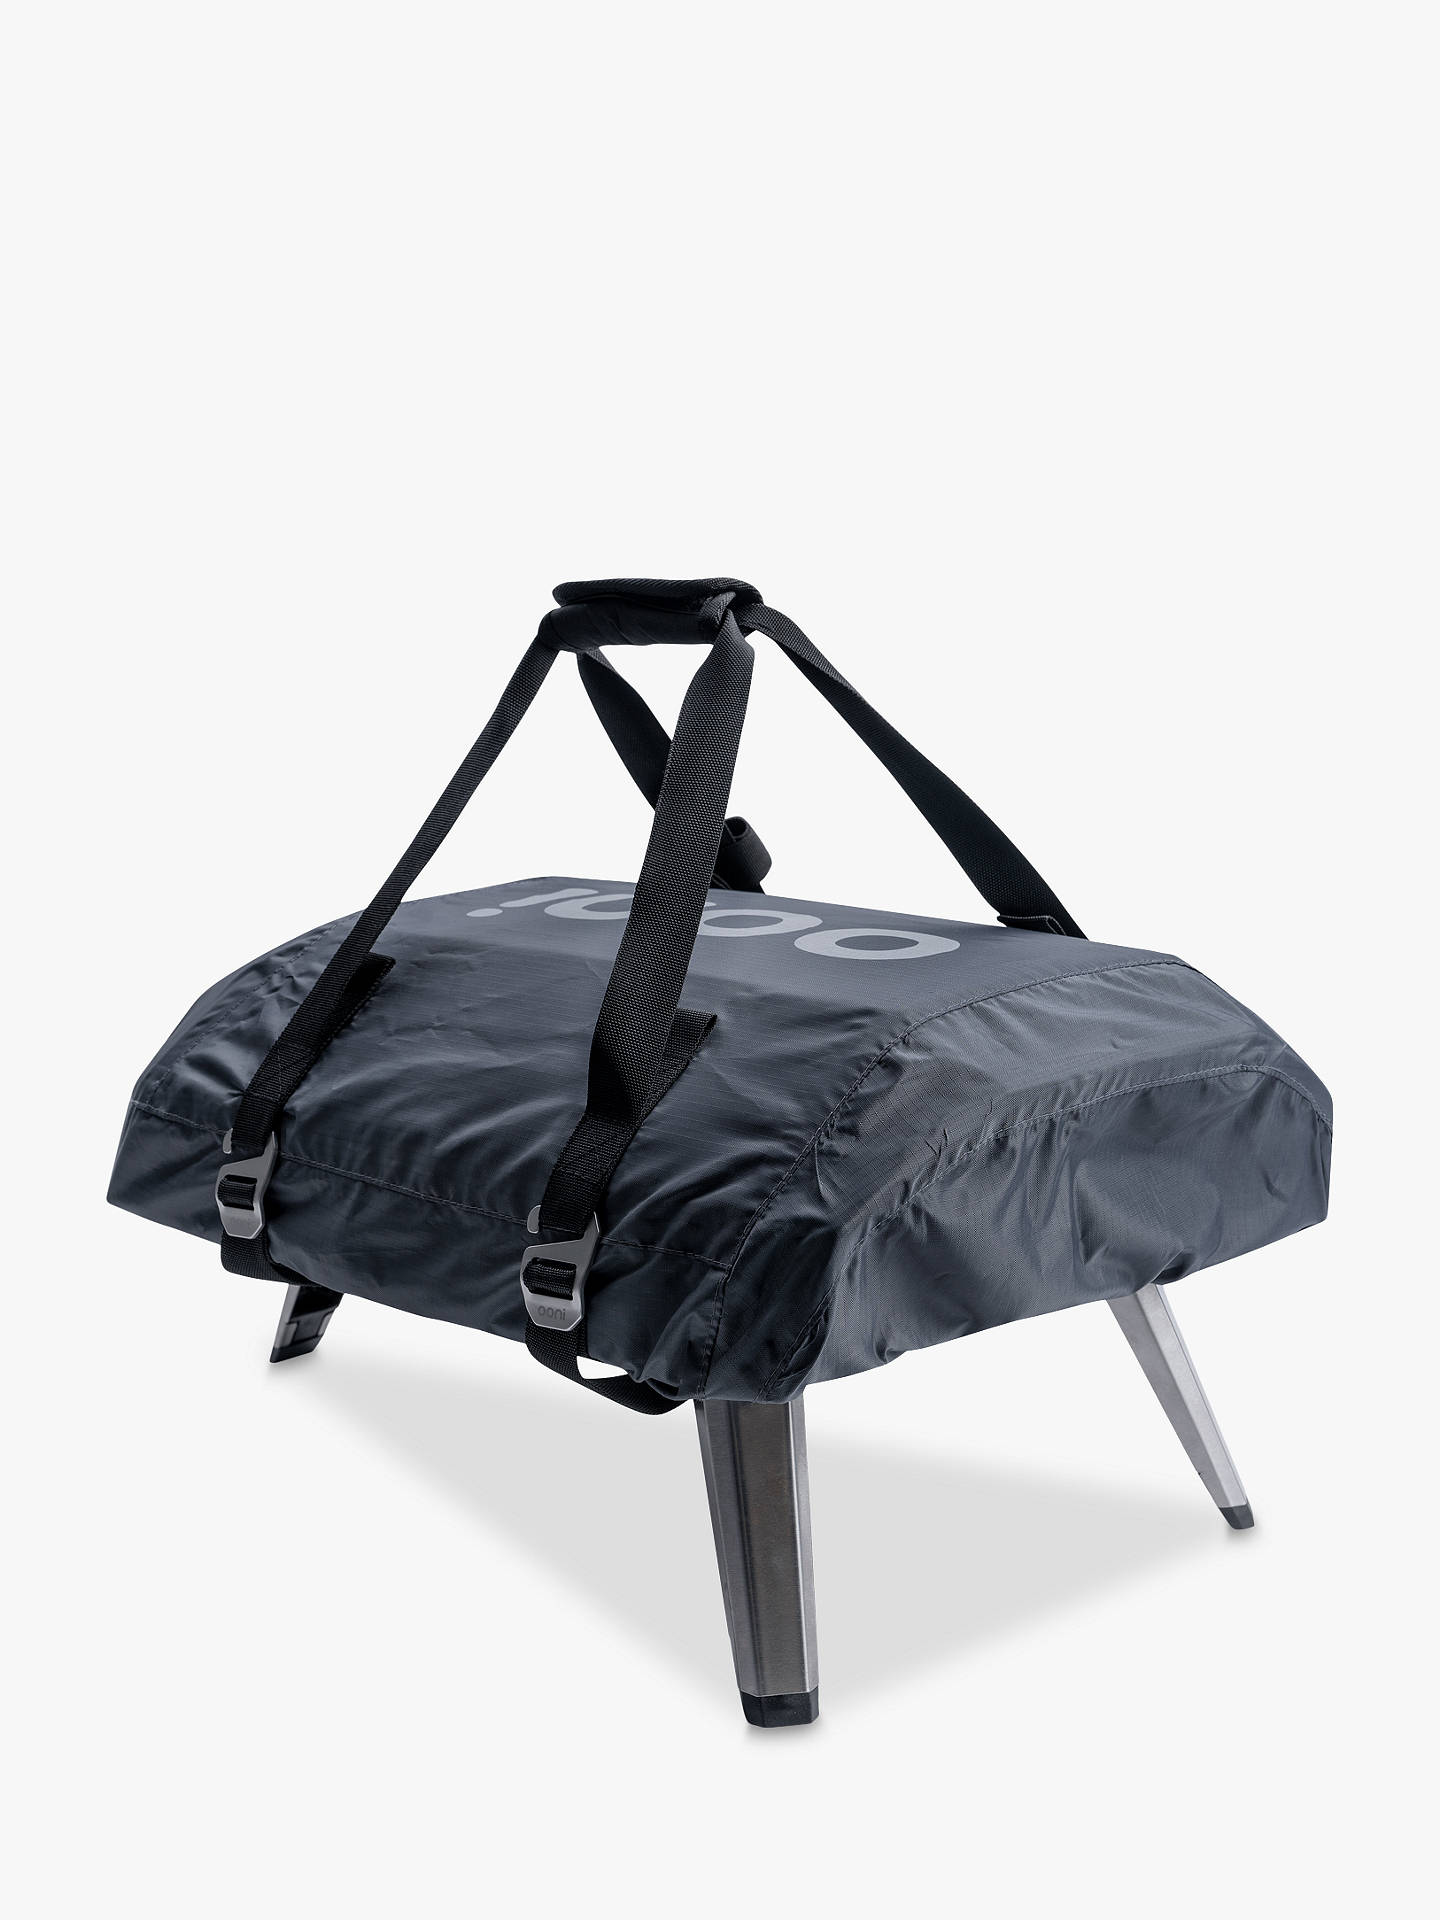 Buy Ooni Koda Pizza Oven Carry Cover, Black Online at johnlewis.com